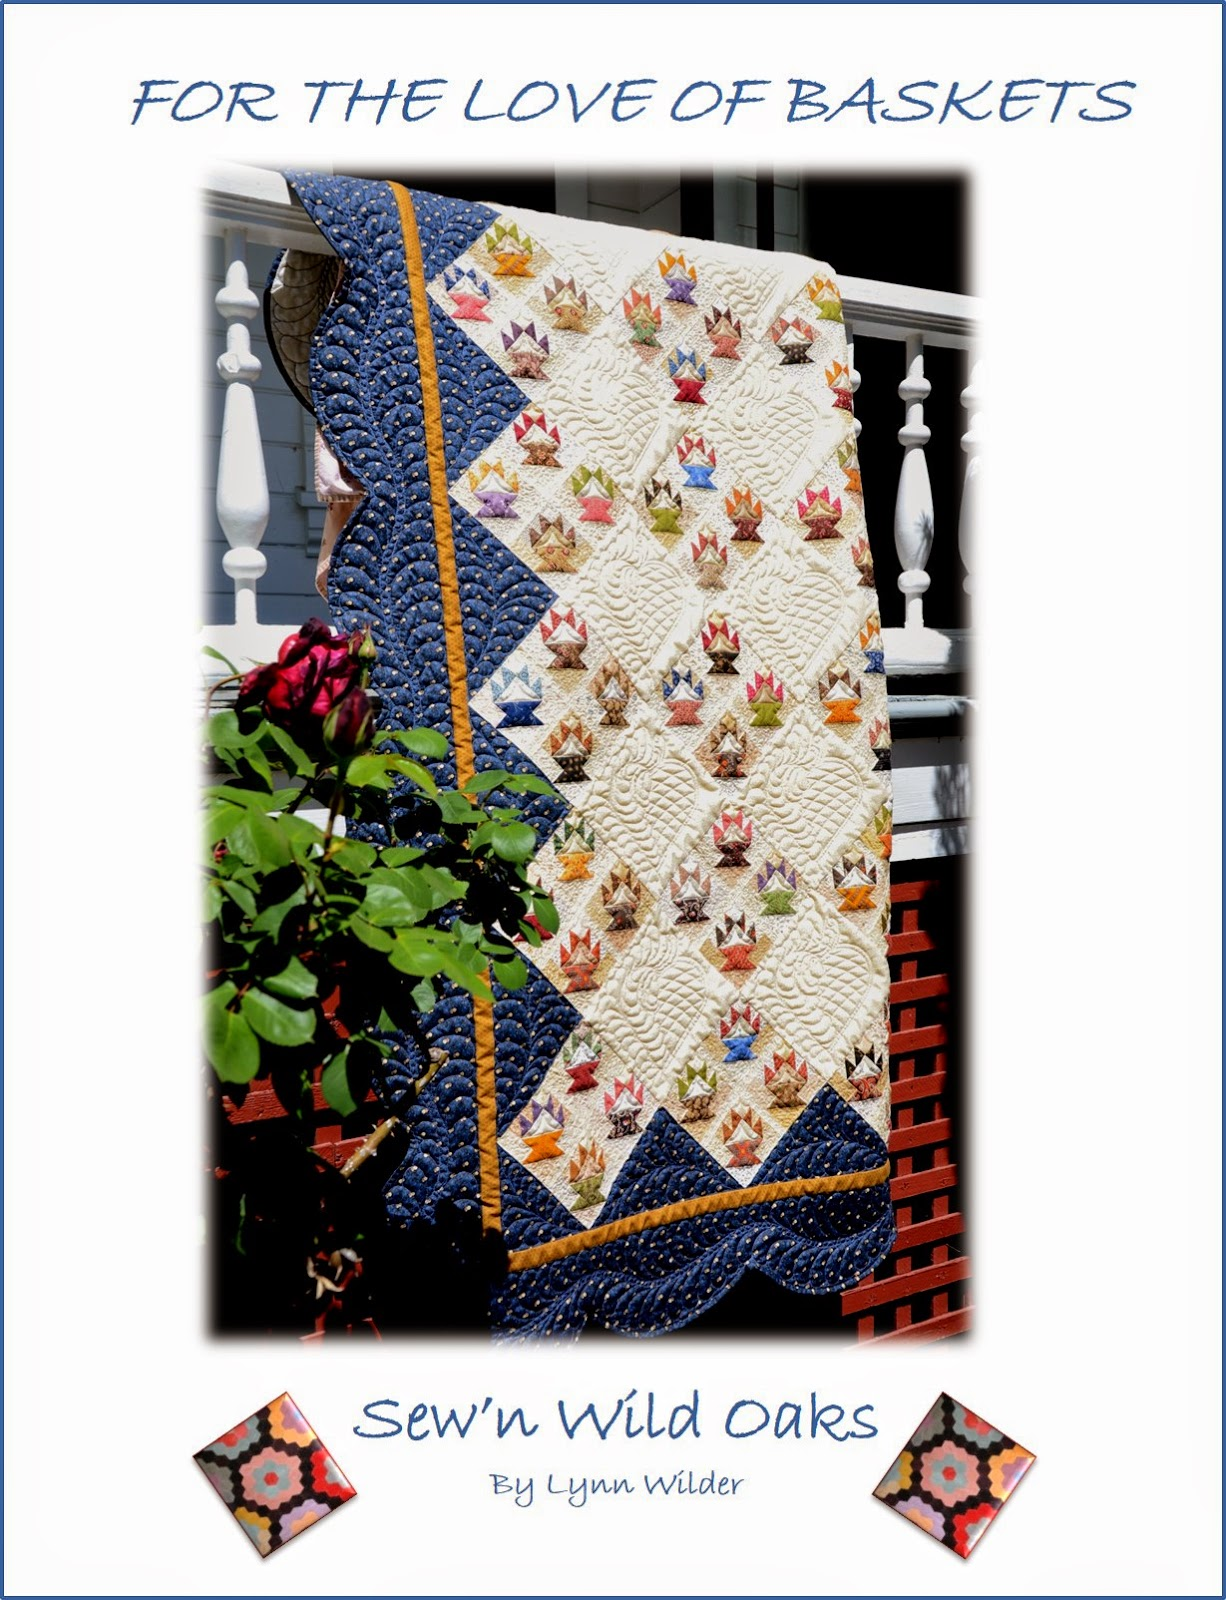 http://www.inbetweenstitches.com/shop/Patterns/p/For-the-Love-of-Baskets-x2501098.htm